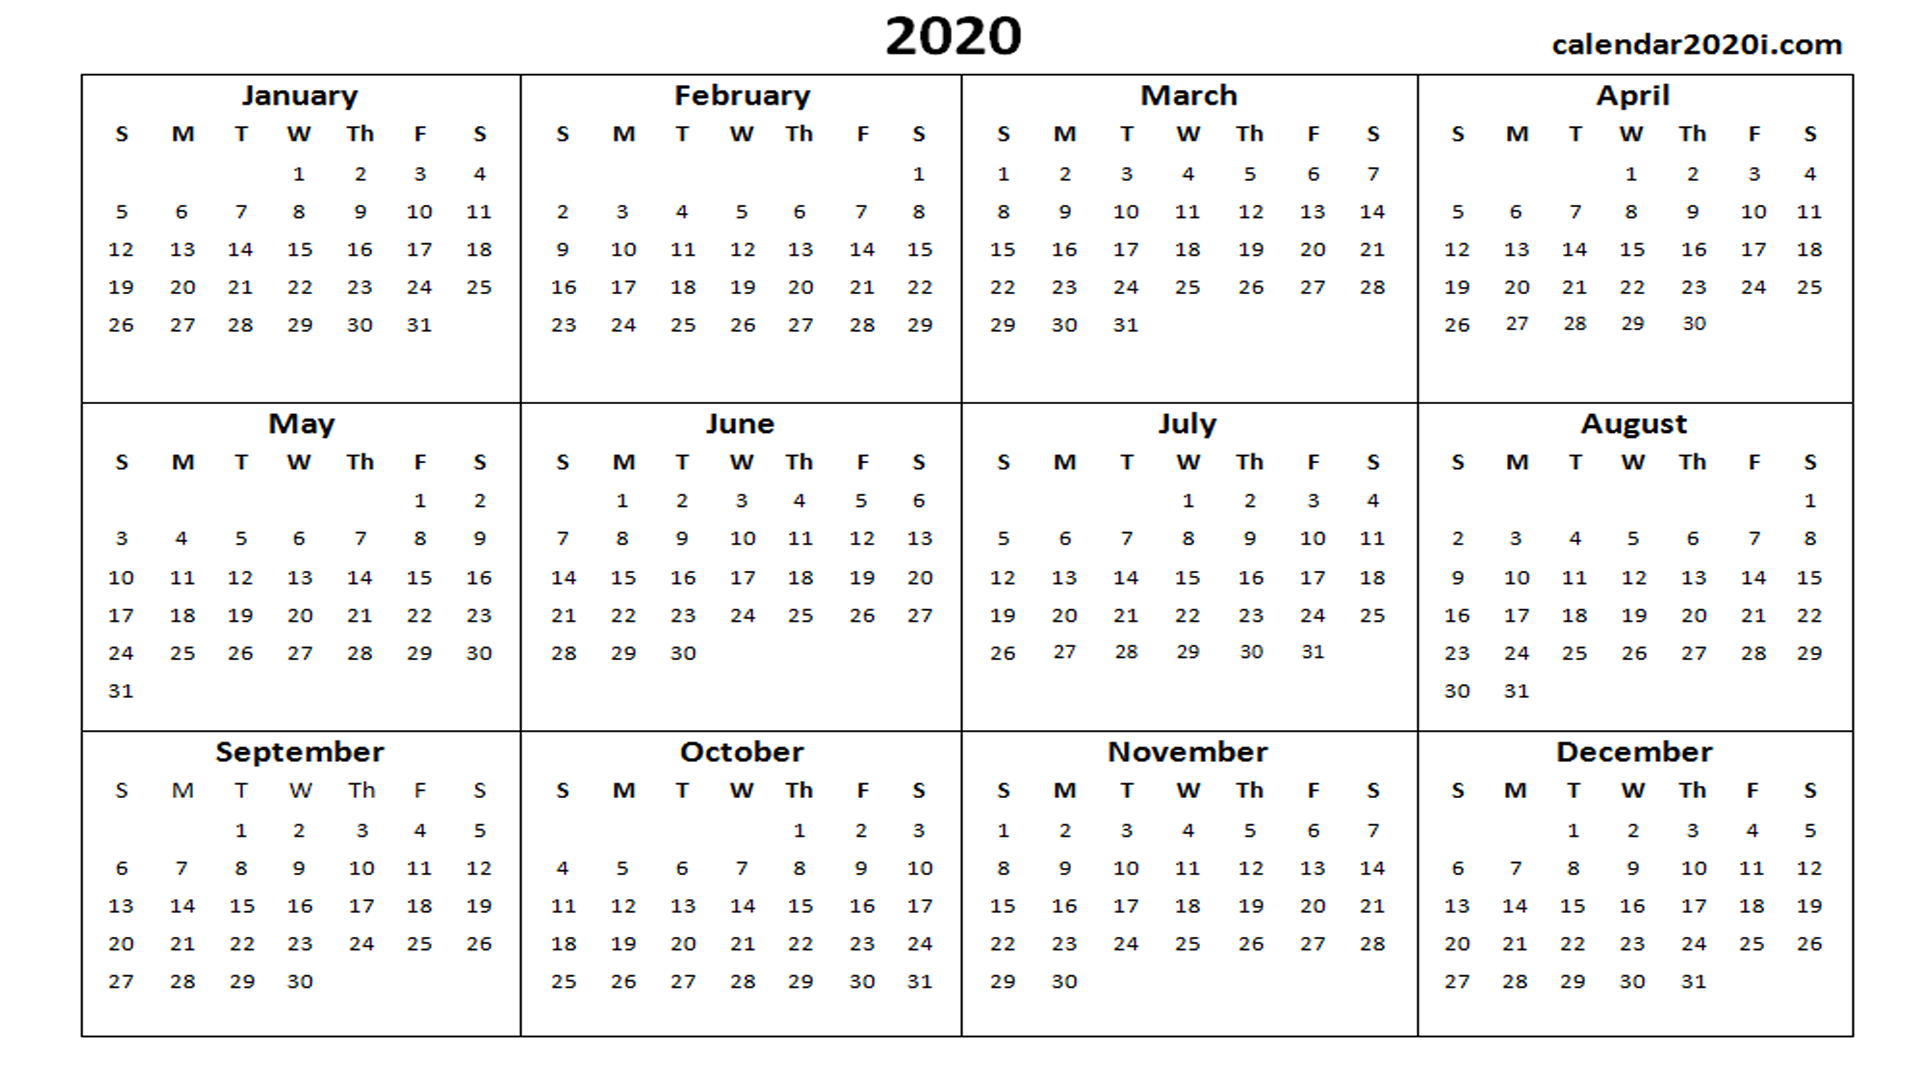 2020 Calendar Wallpapers   Top 2020 Calendar Backgrounds 1920x1080